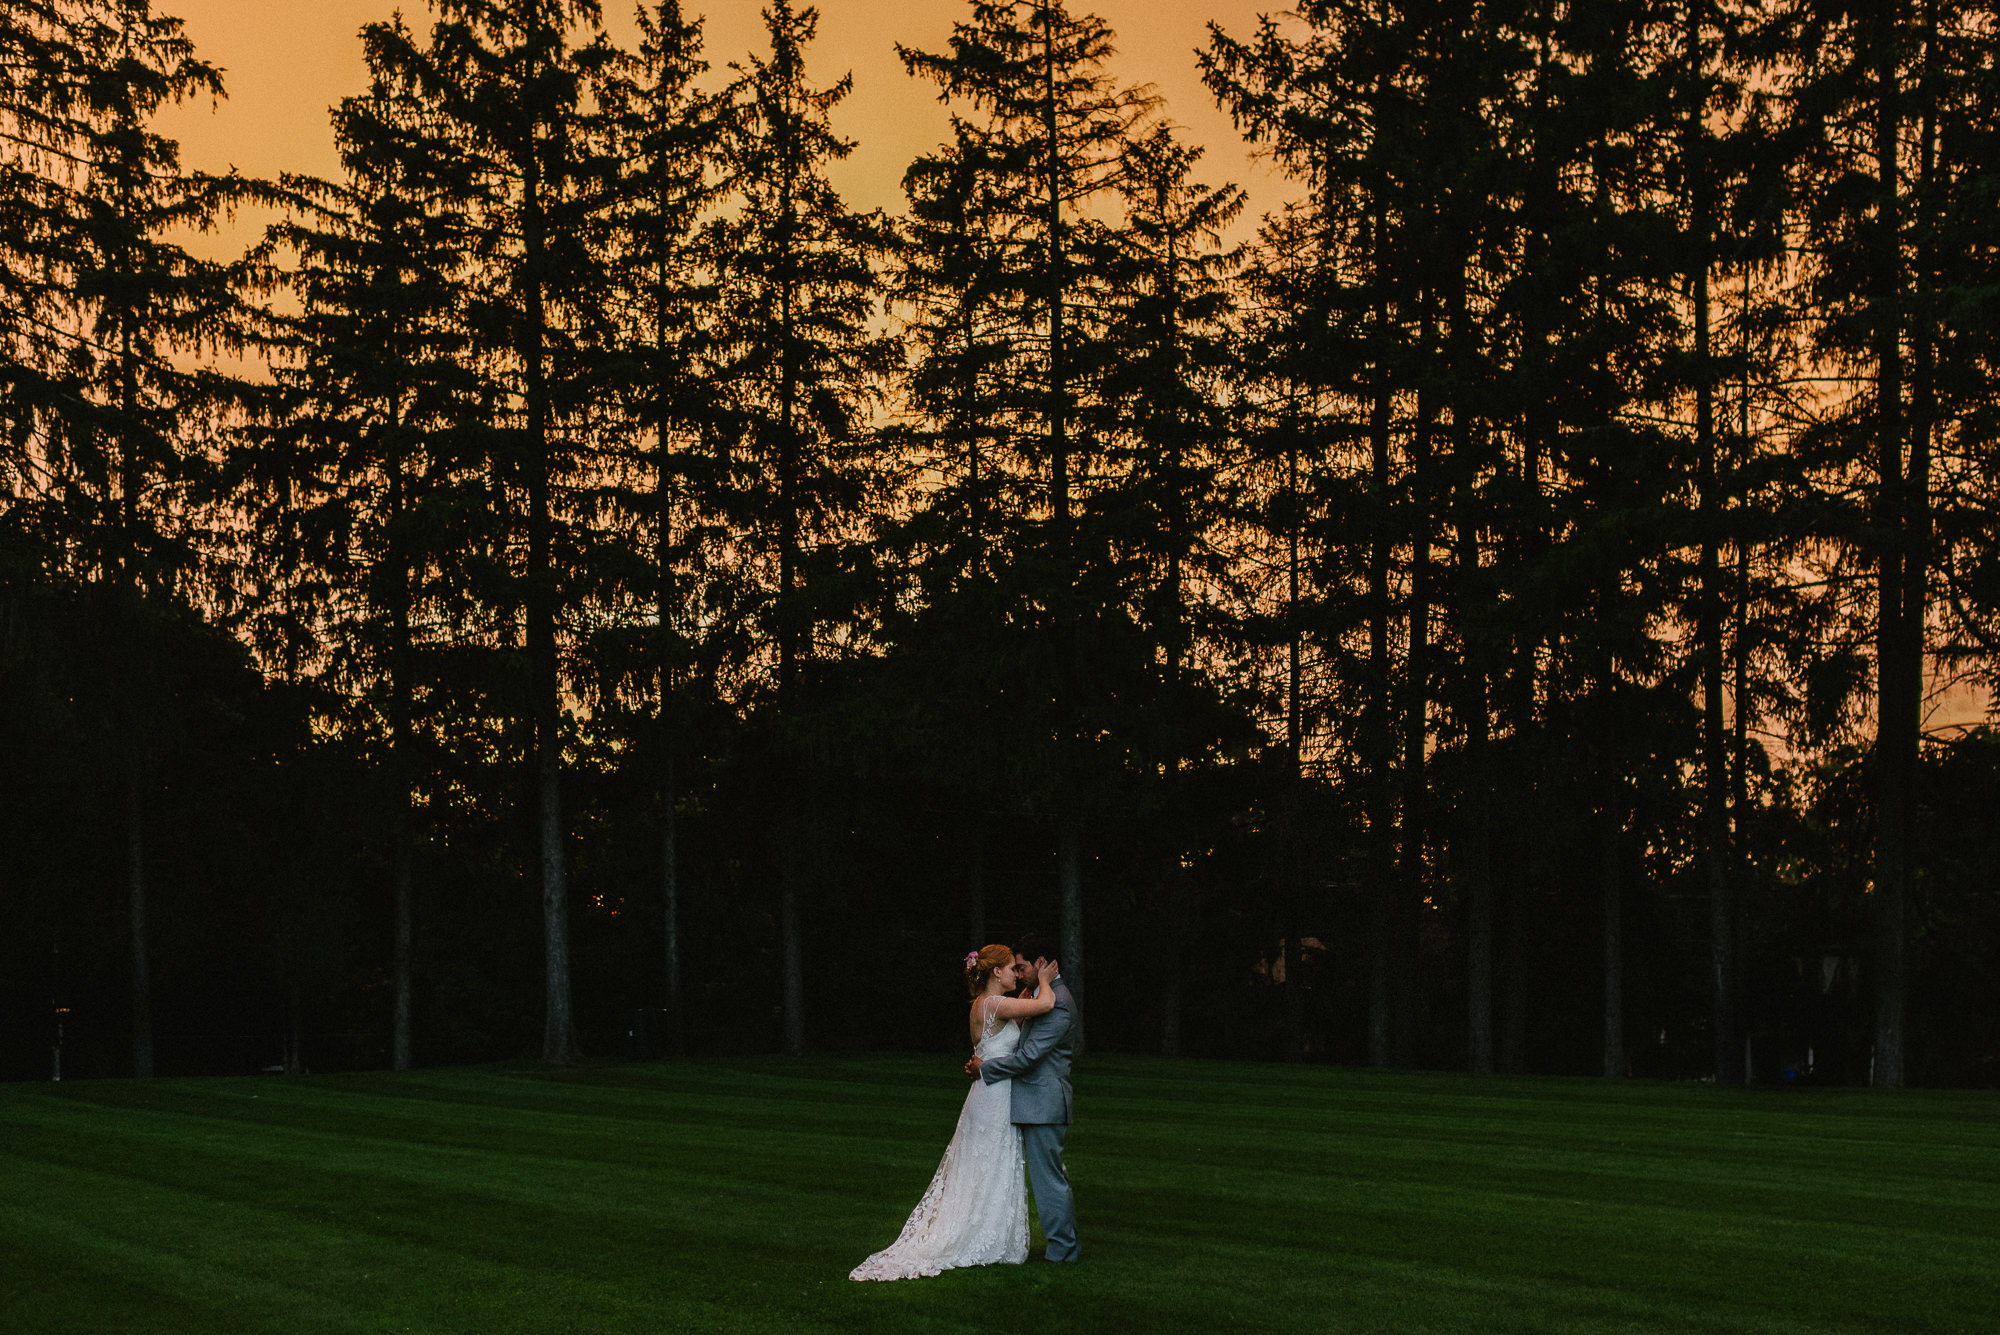 sunset portraits of couple at wedding at saint Andrew's college